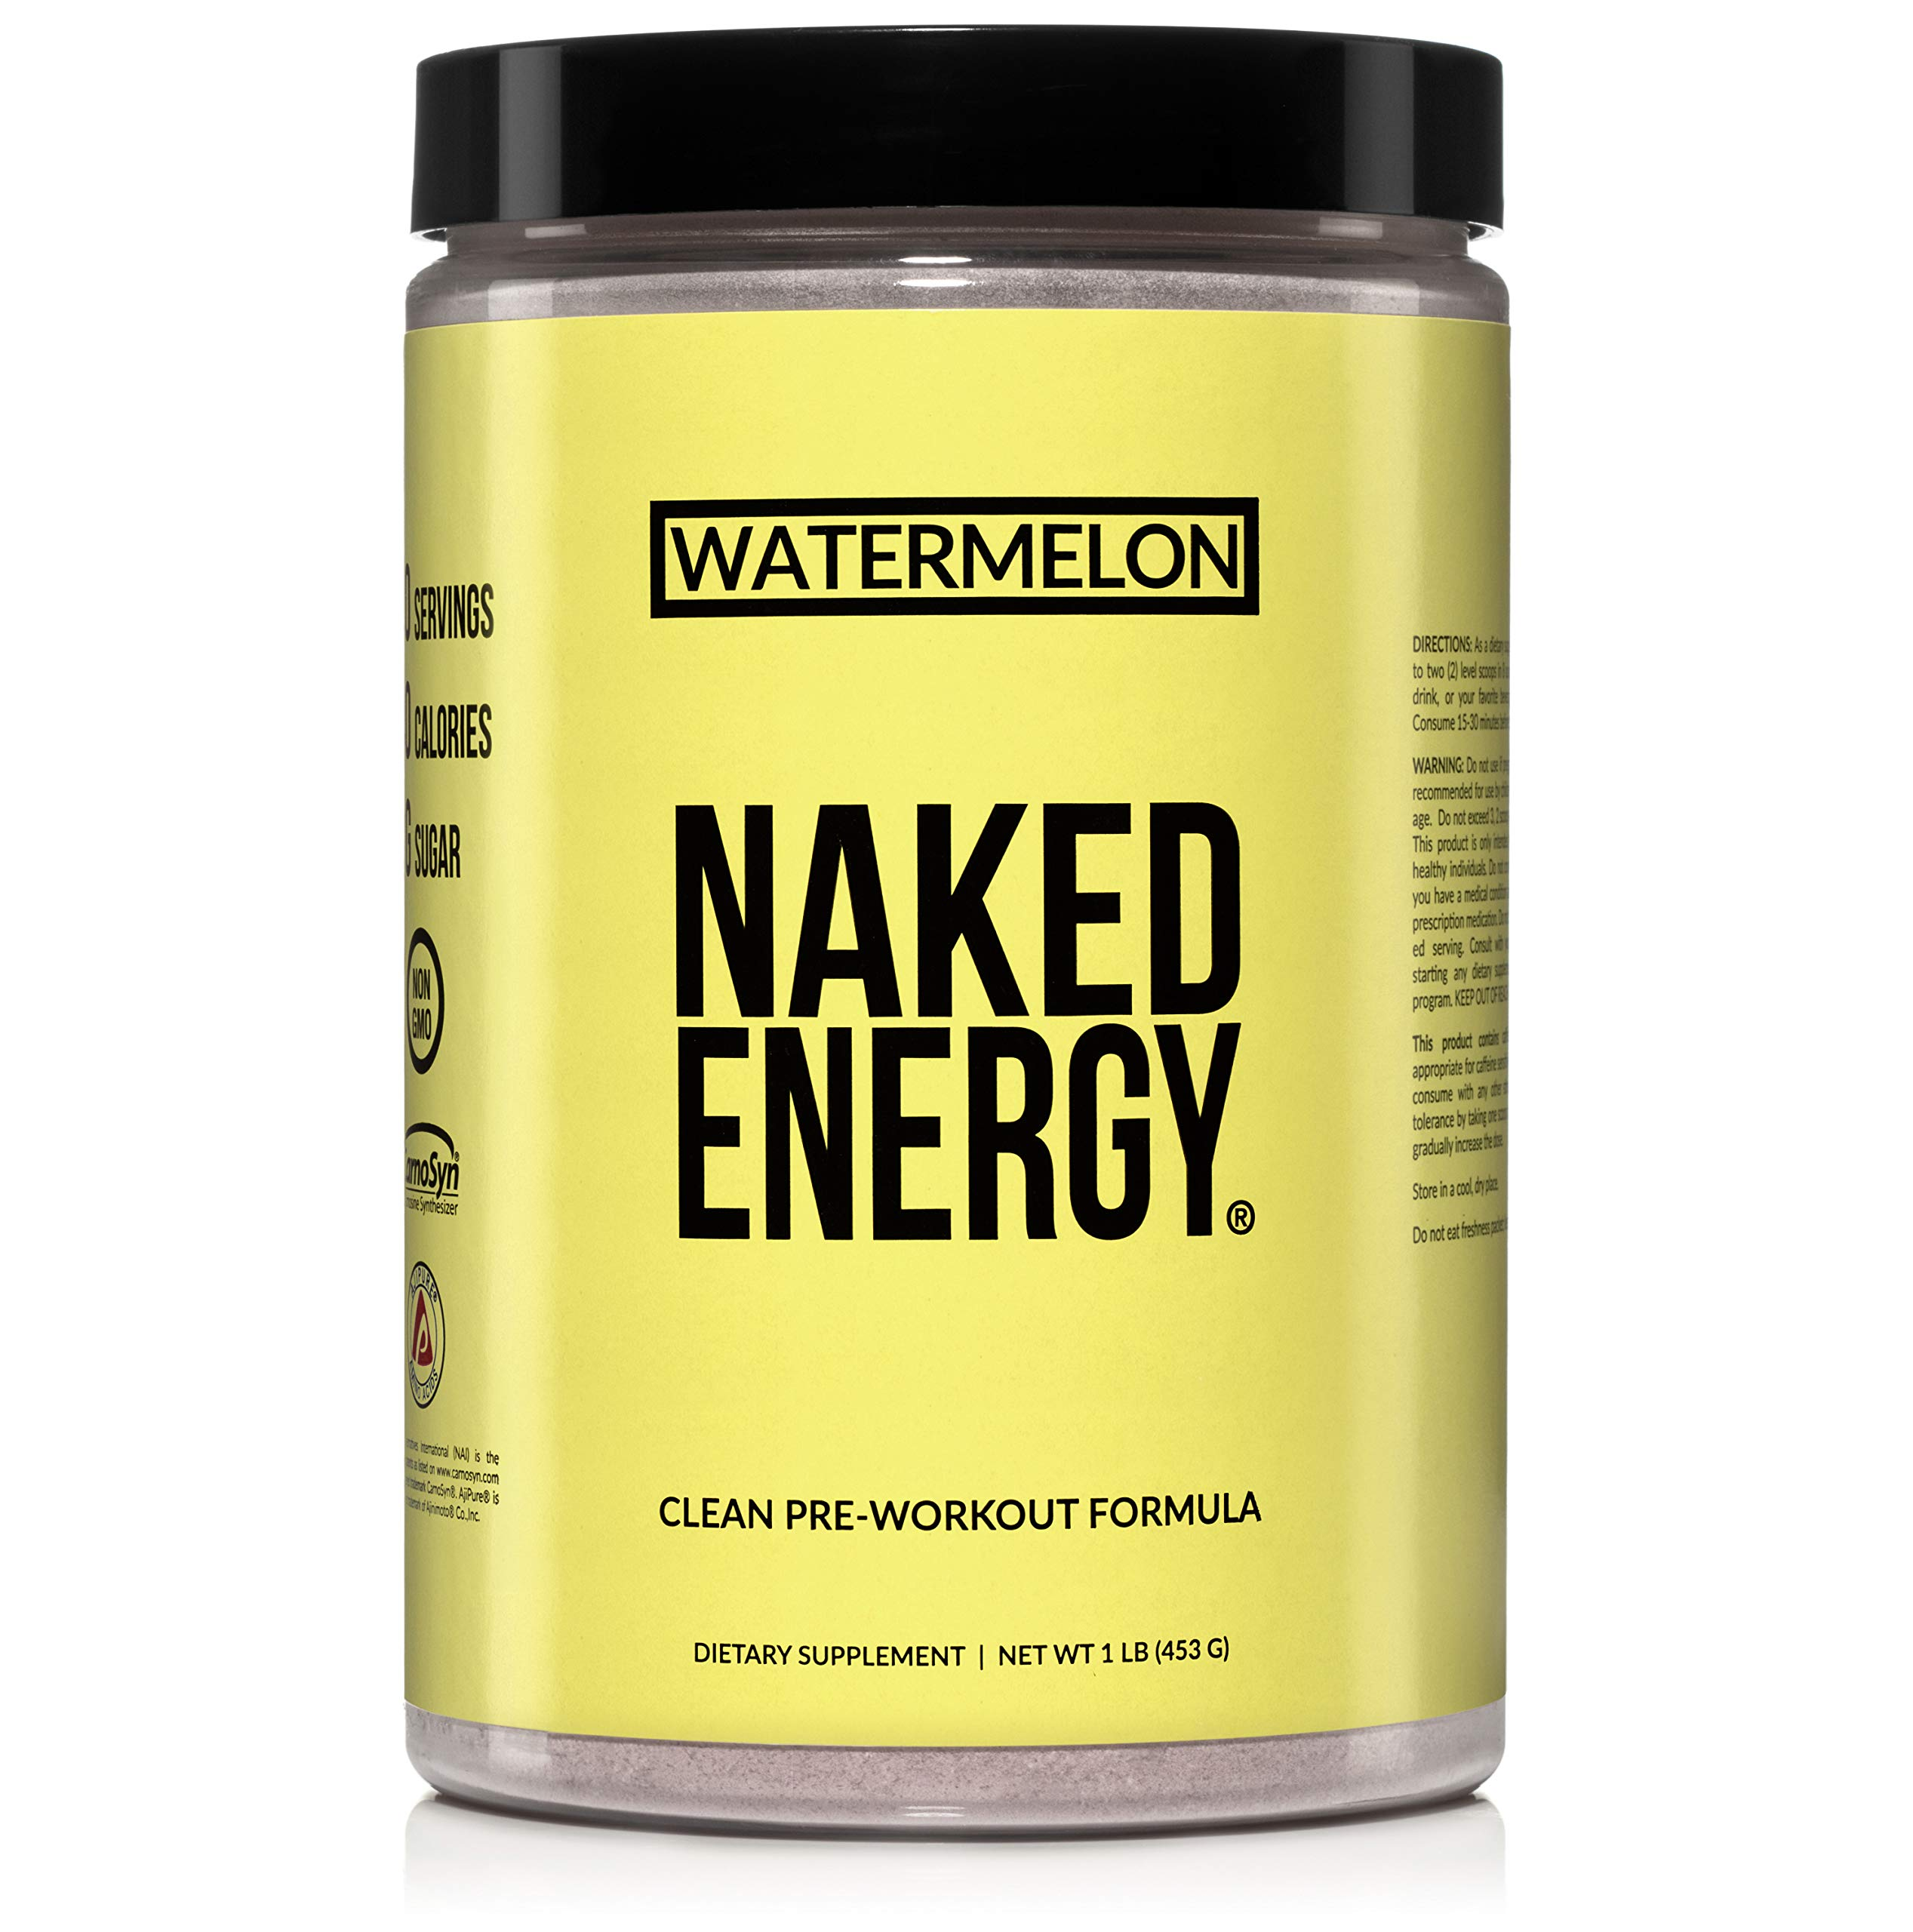 Watermelon Naked Energy – All Natural Watermelon Pre Workout Supplement for Men and Women, Vegan Friendly, No Added Sweeteners, Colors or Flavors – 30 Servings